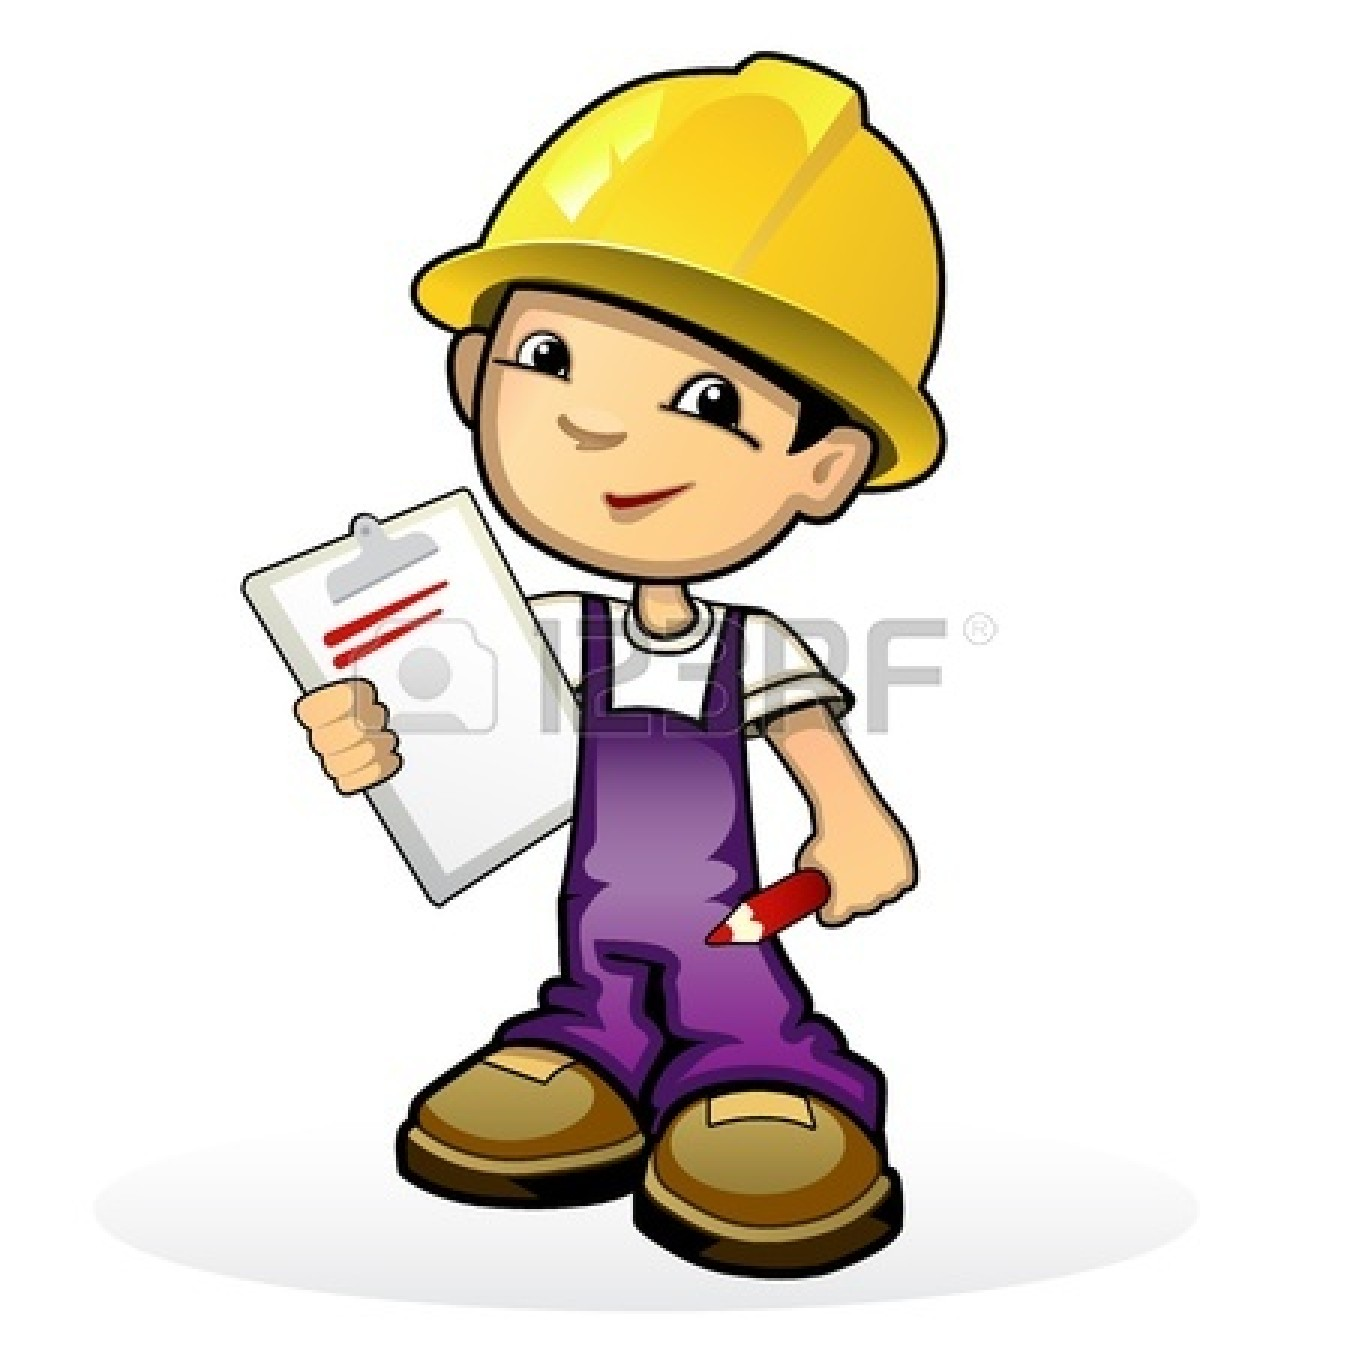 Engine clipart enginner. Boy engineer pencil and